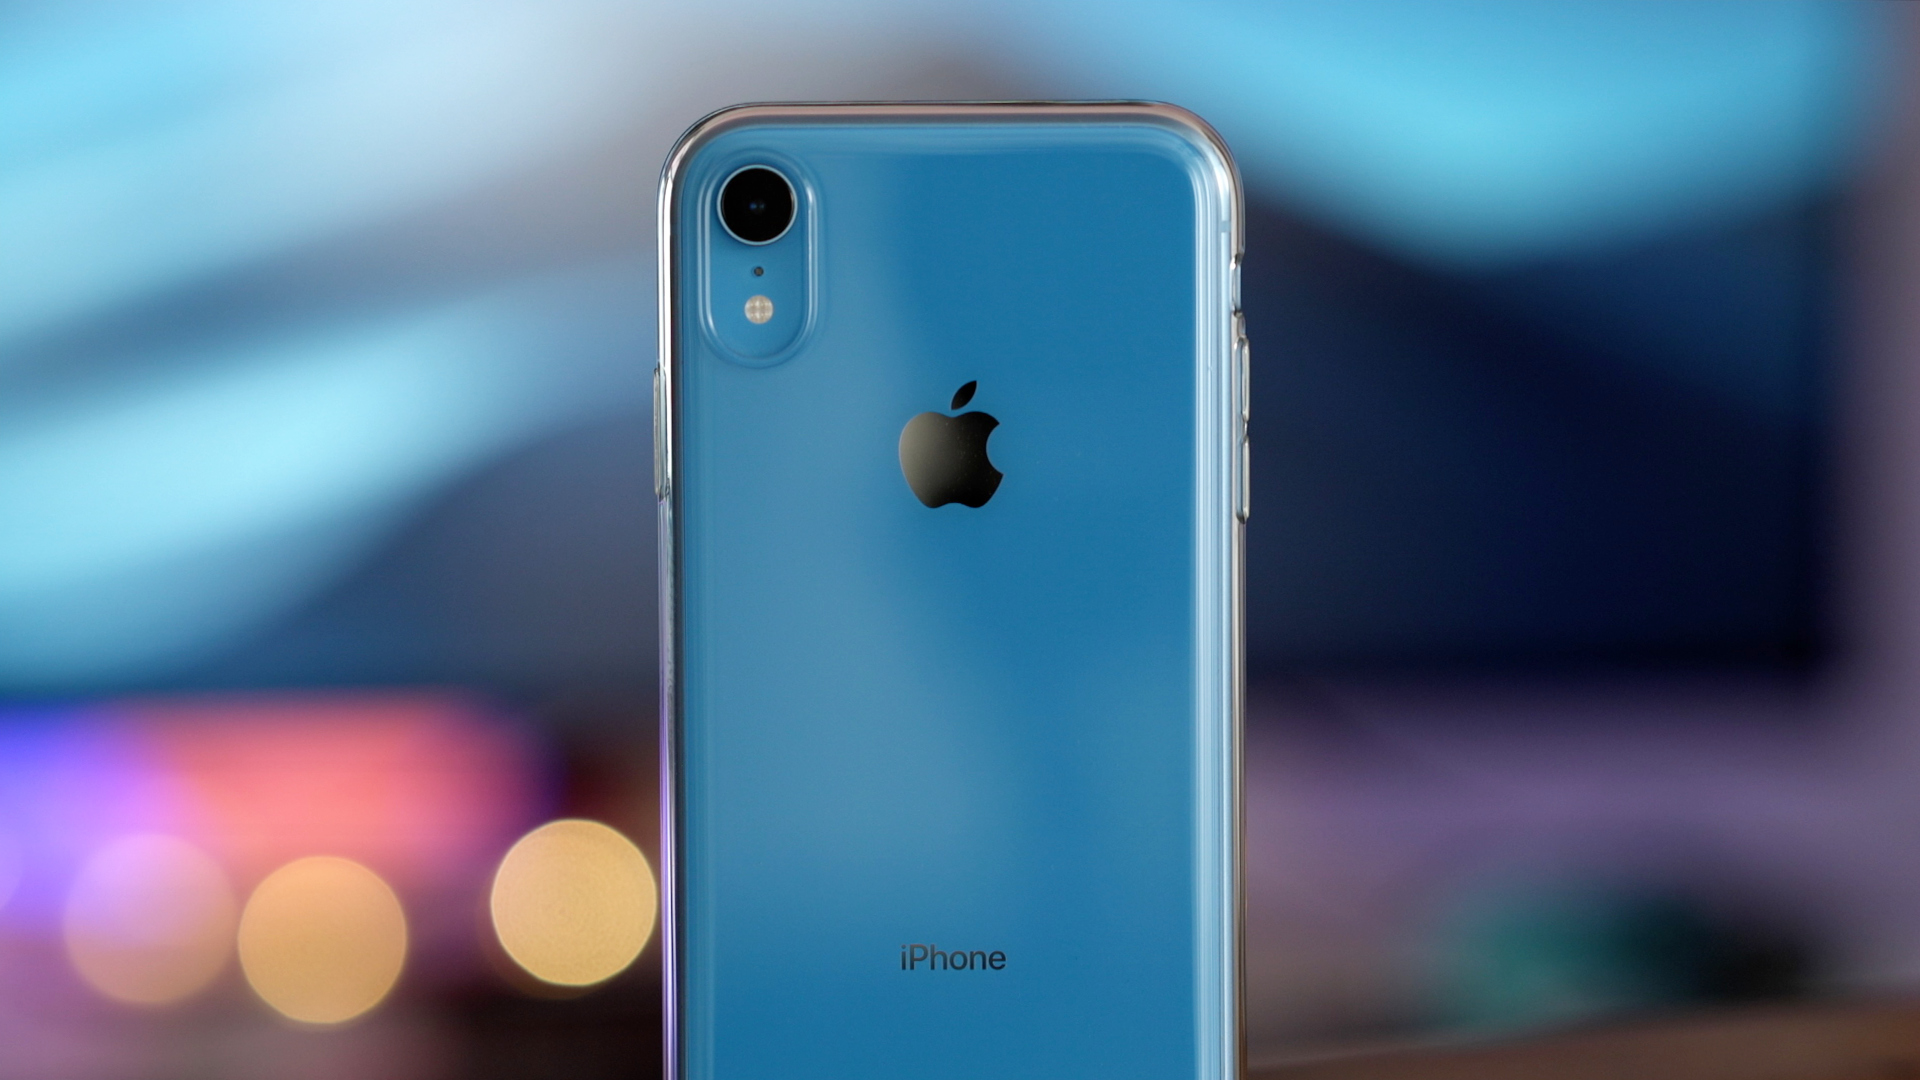 iPhone XR was the world's best-selling smartphone in 2019, new data suggests - 9to5Mac